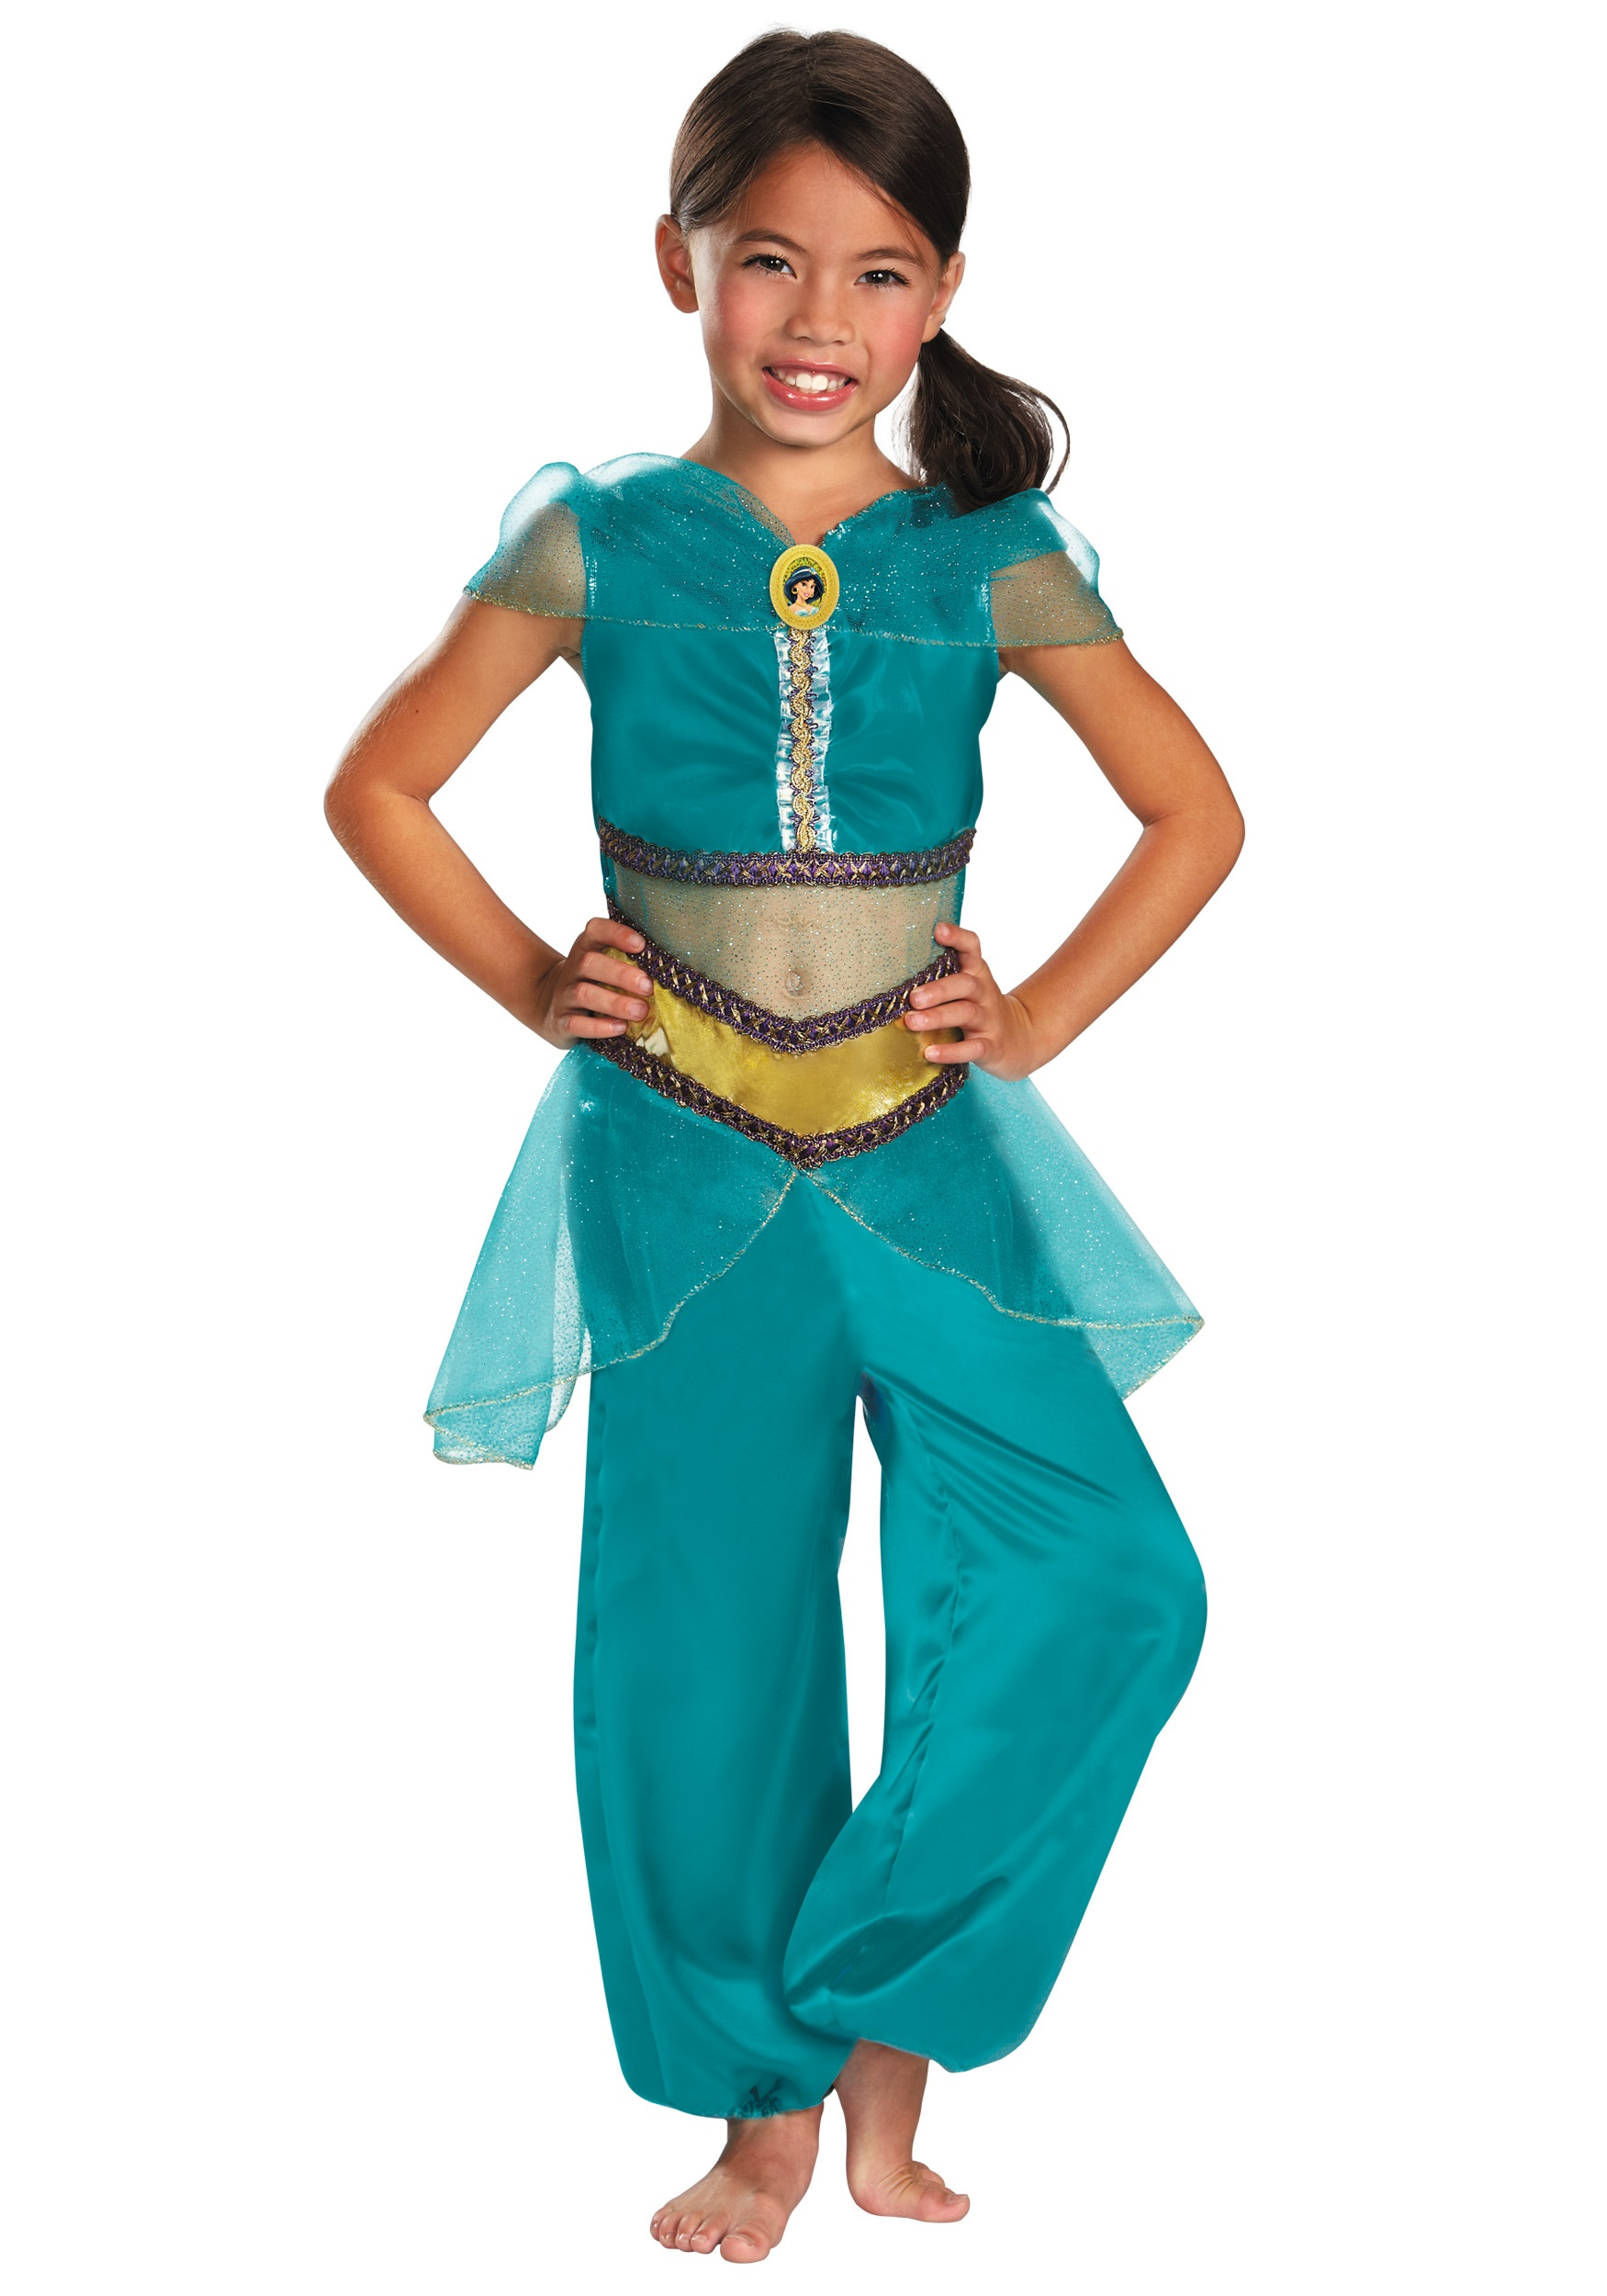 Girls Jasmine Sparkle Classic Costume  sc 1 st  Halloween Costumes & Girls Jasmine Sparkle Classic Costume - Halloween Costumes